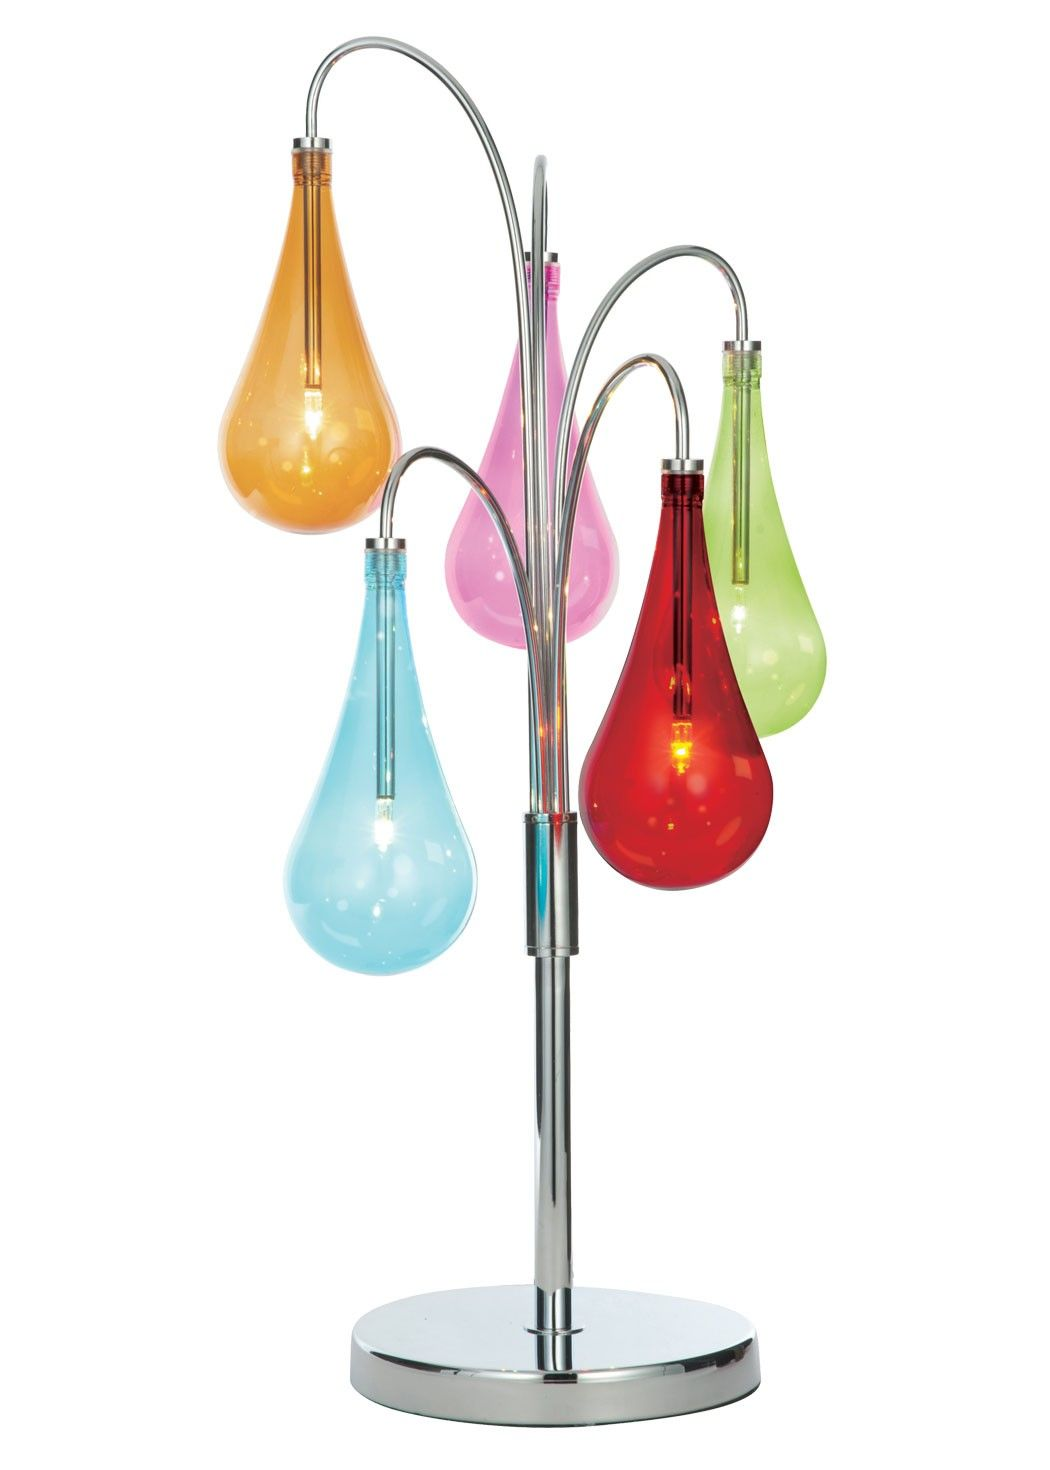 Niro 5 light table lamp creative table lamps pinterest glass niro 5 light table lamp add some fun to your interiors with this funky table lamp exclusive to pagazzi lighting finished in polished chrome aloadofball Image collections